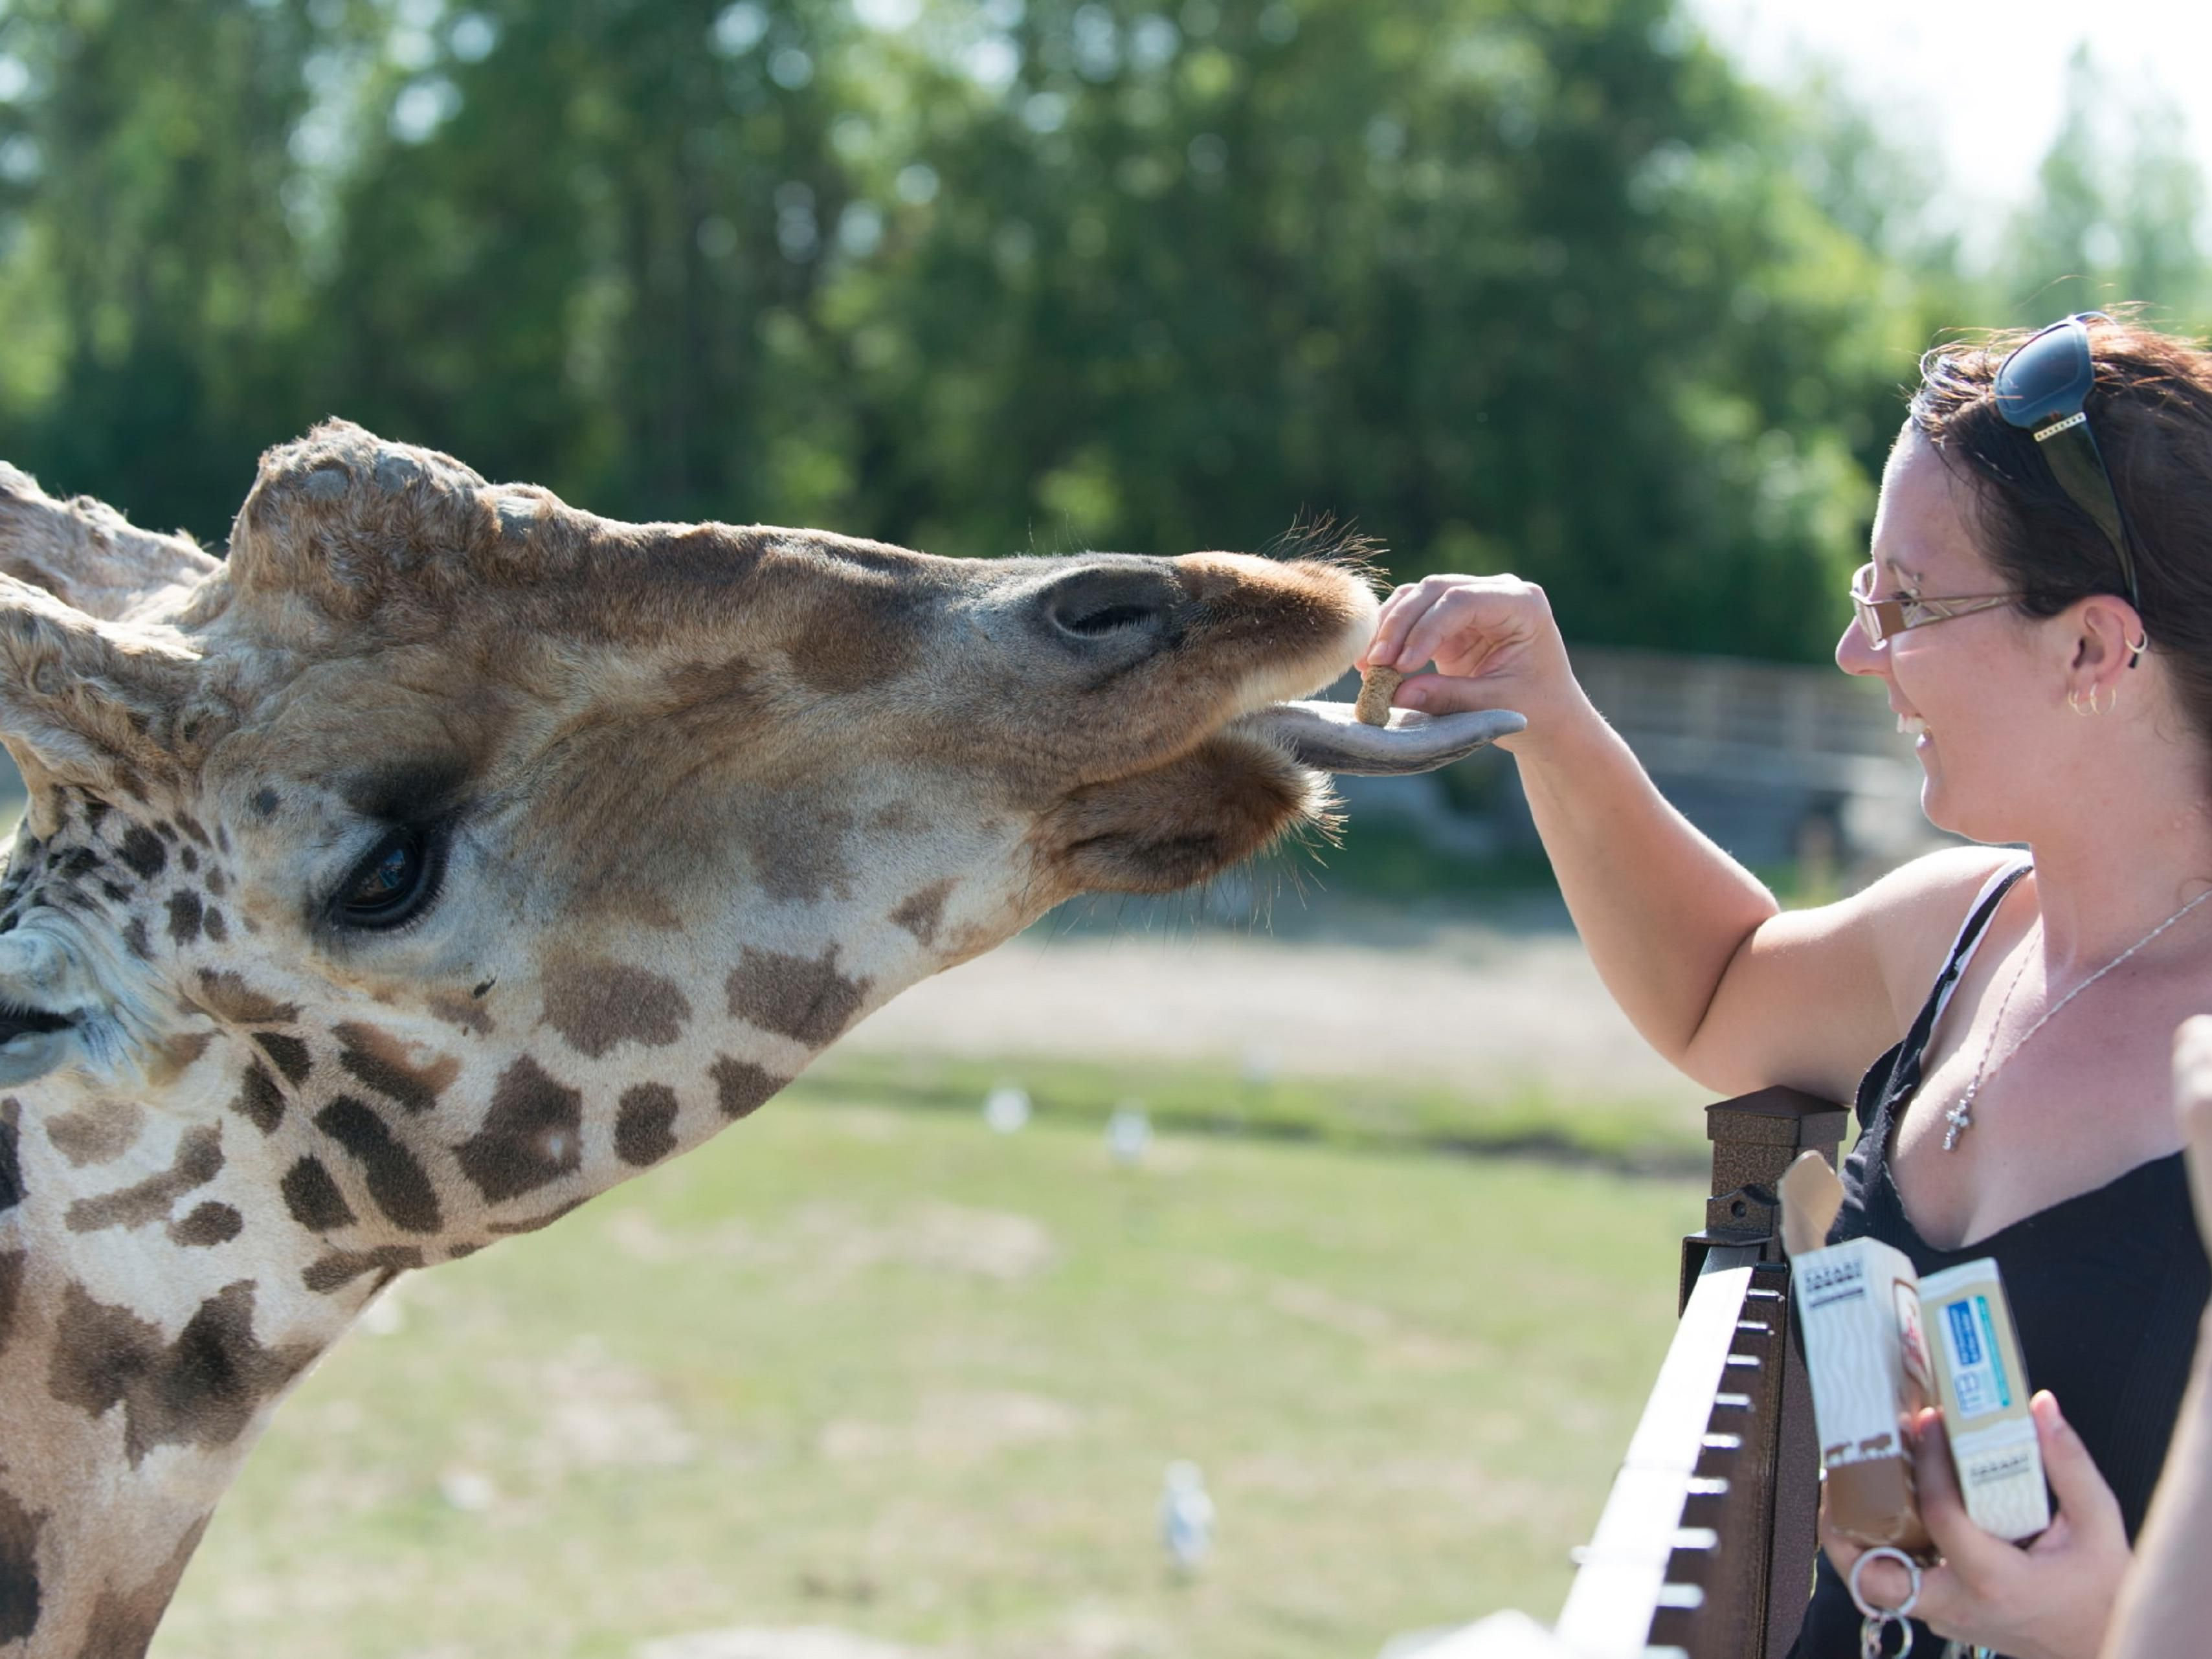 At Parc Safari you are encouraged to feed the animals!